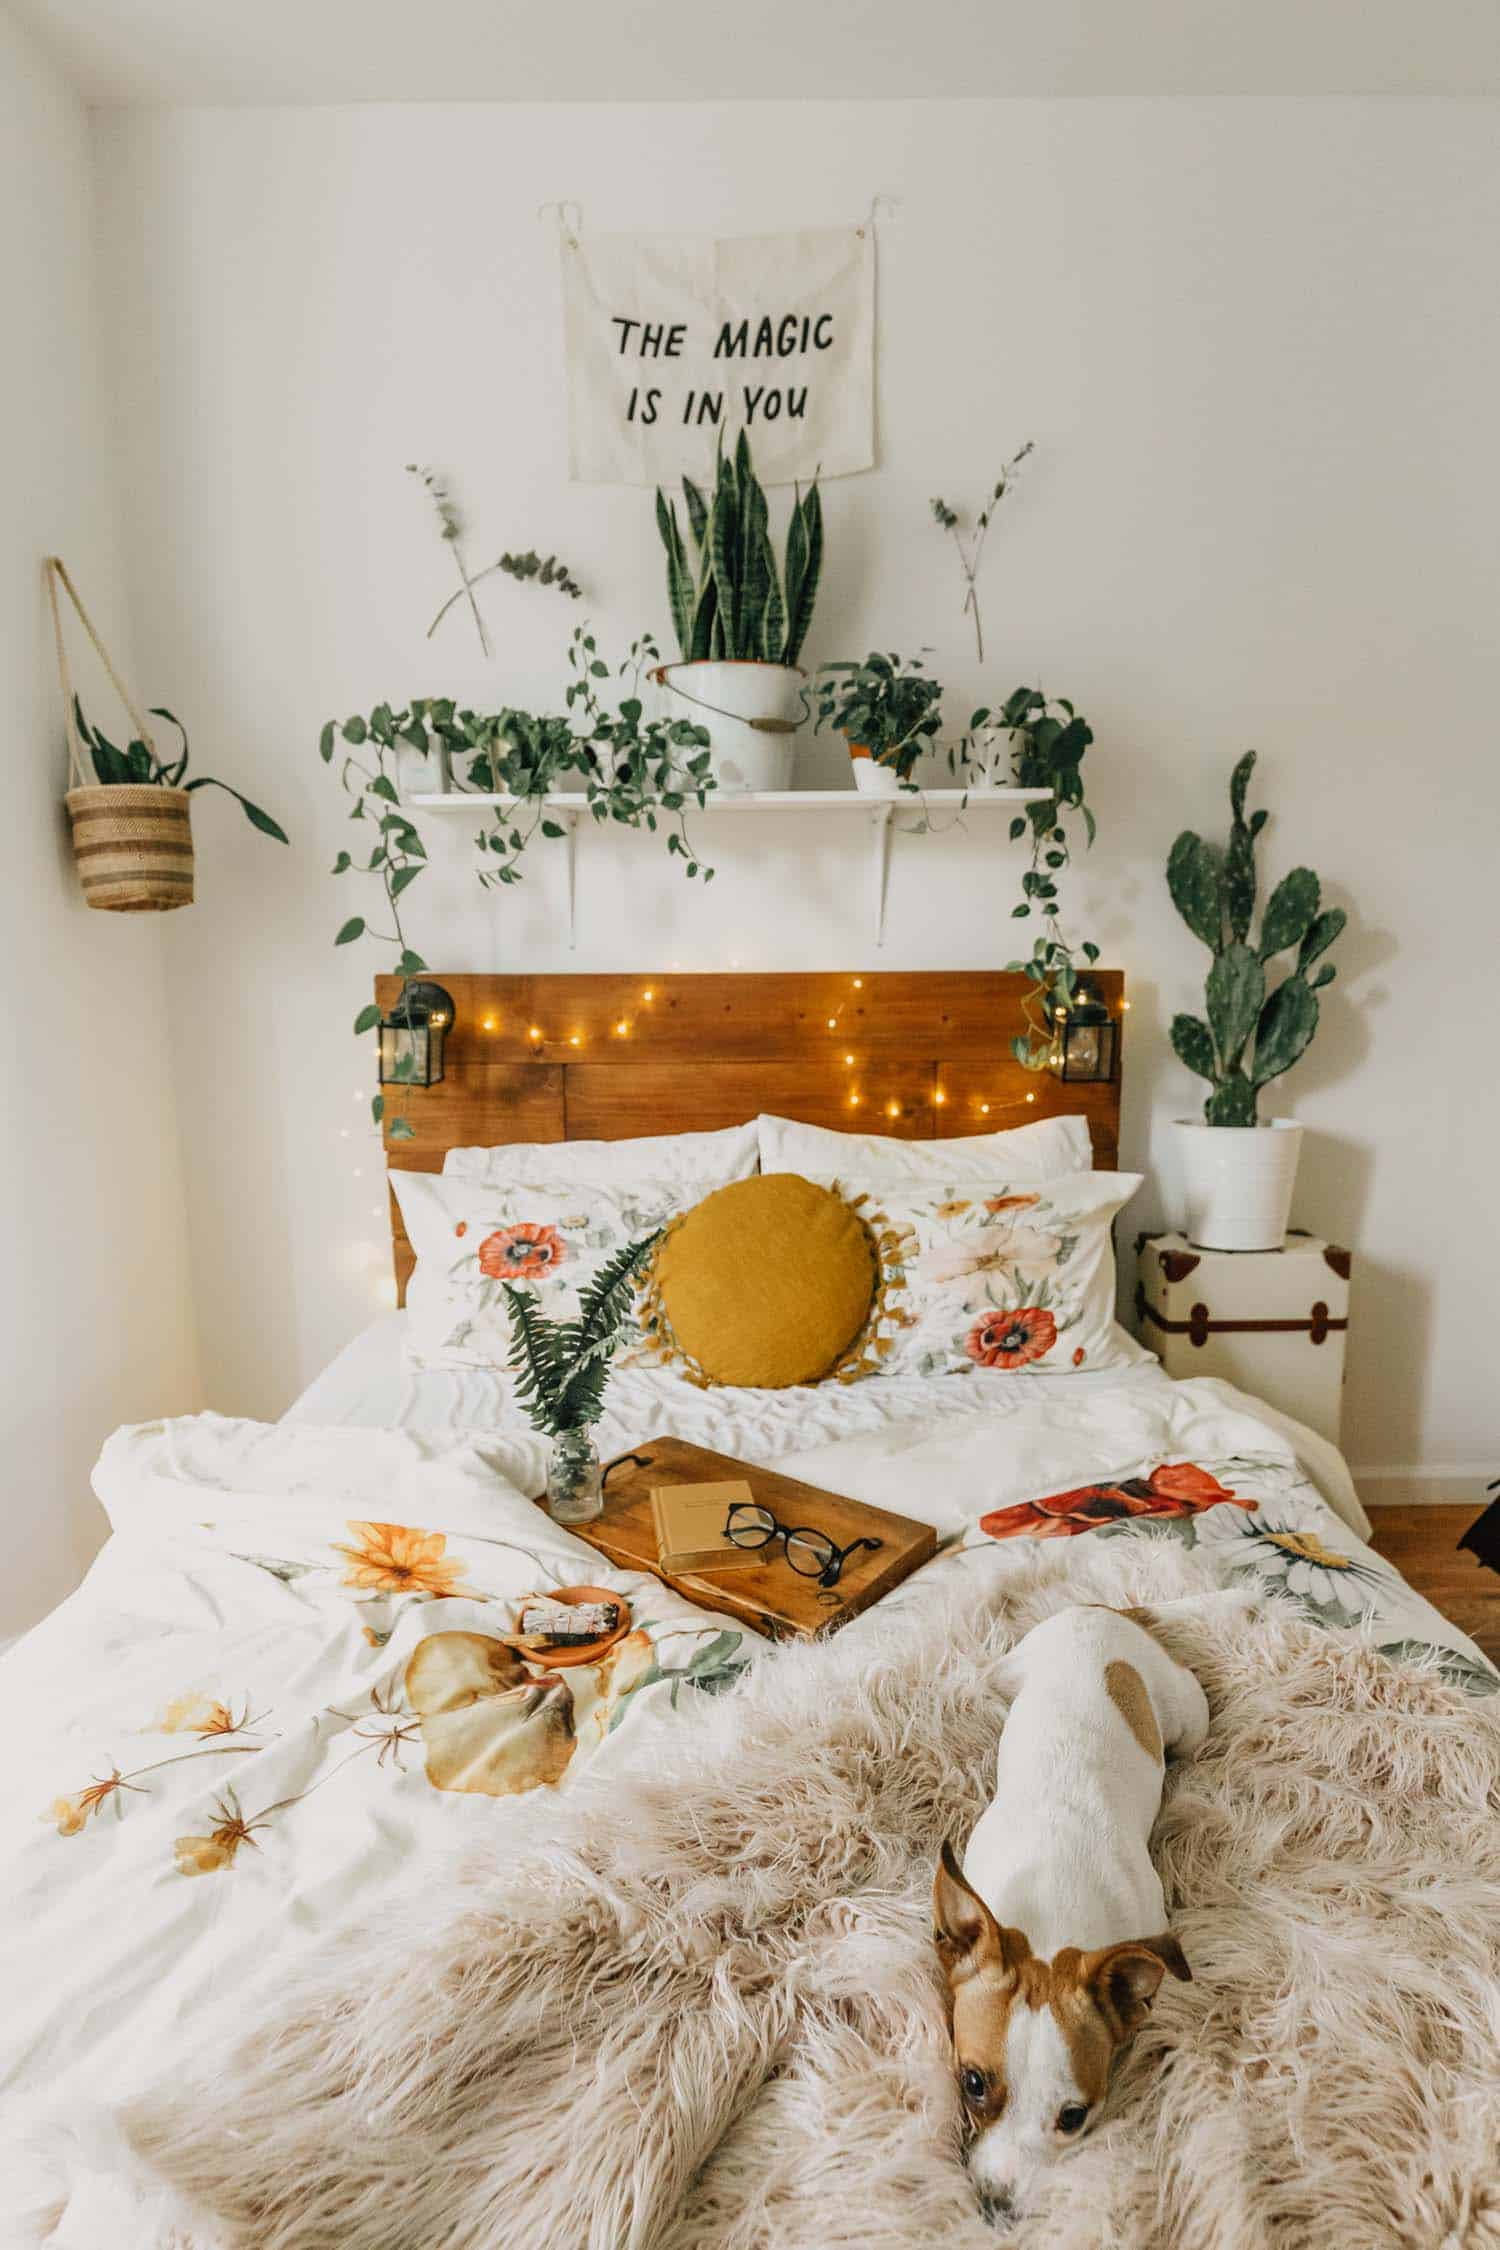 Bedroom-Decorating-Ideas-For-Autumn-21-1-Kindesign